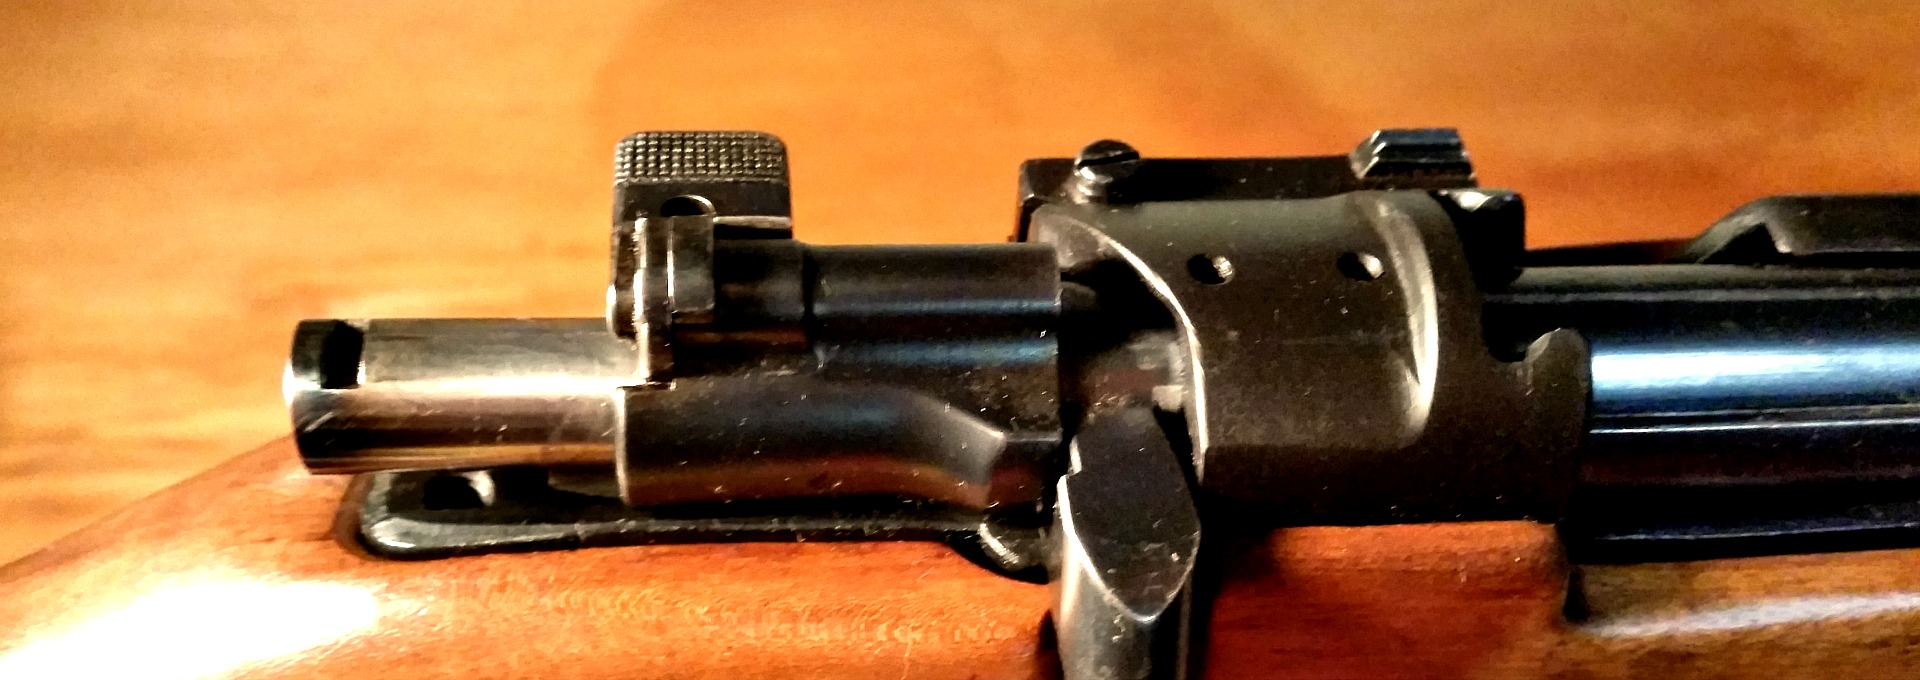 Modified Mauser bolt action.